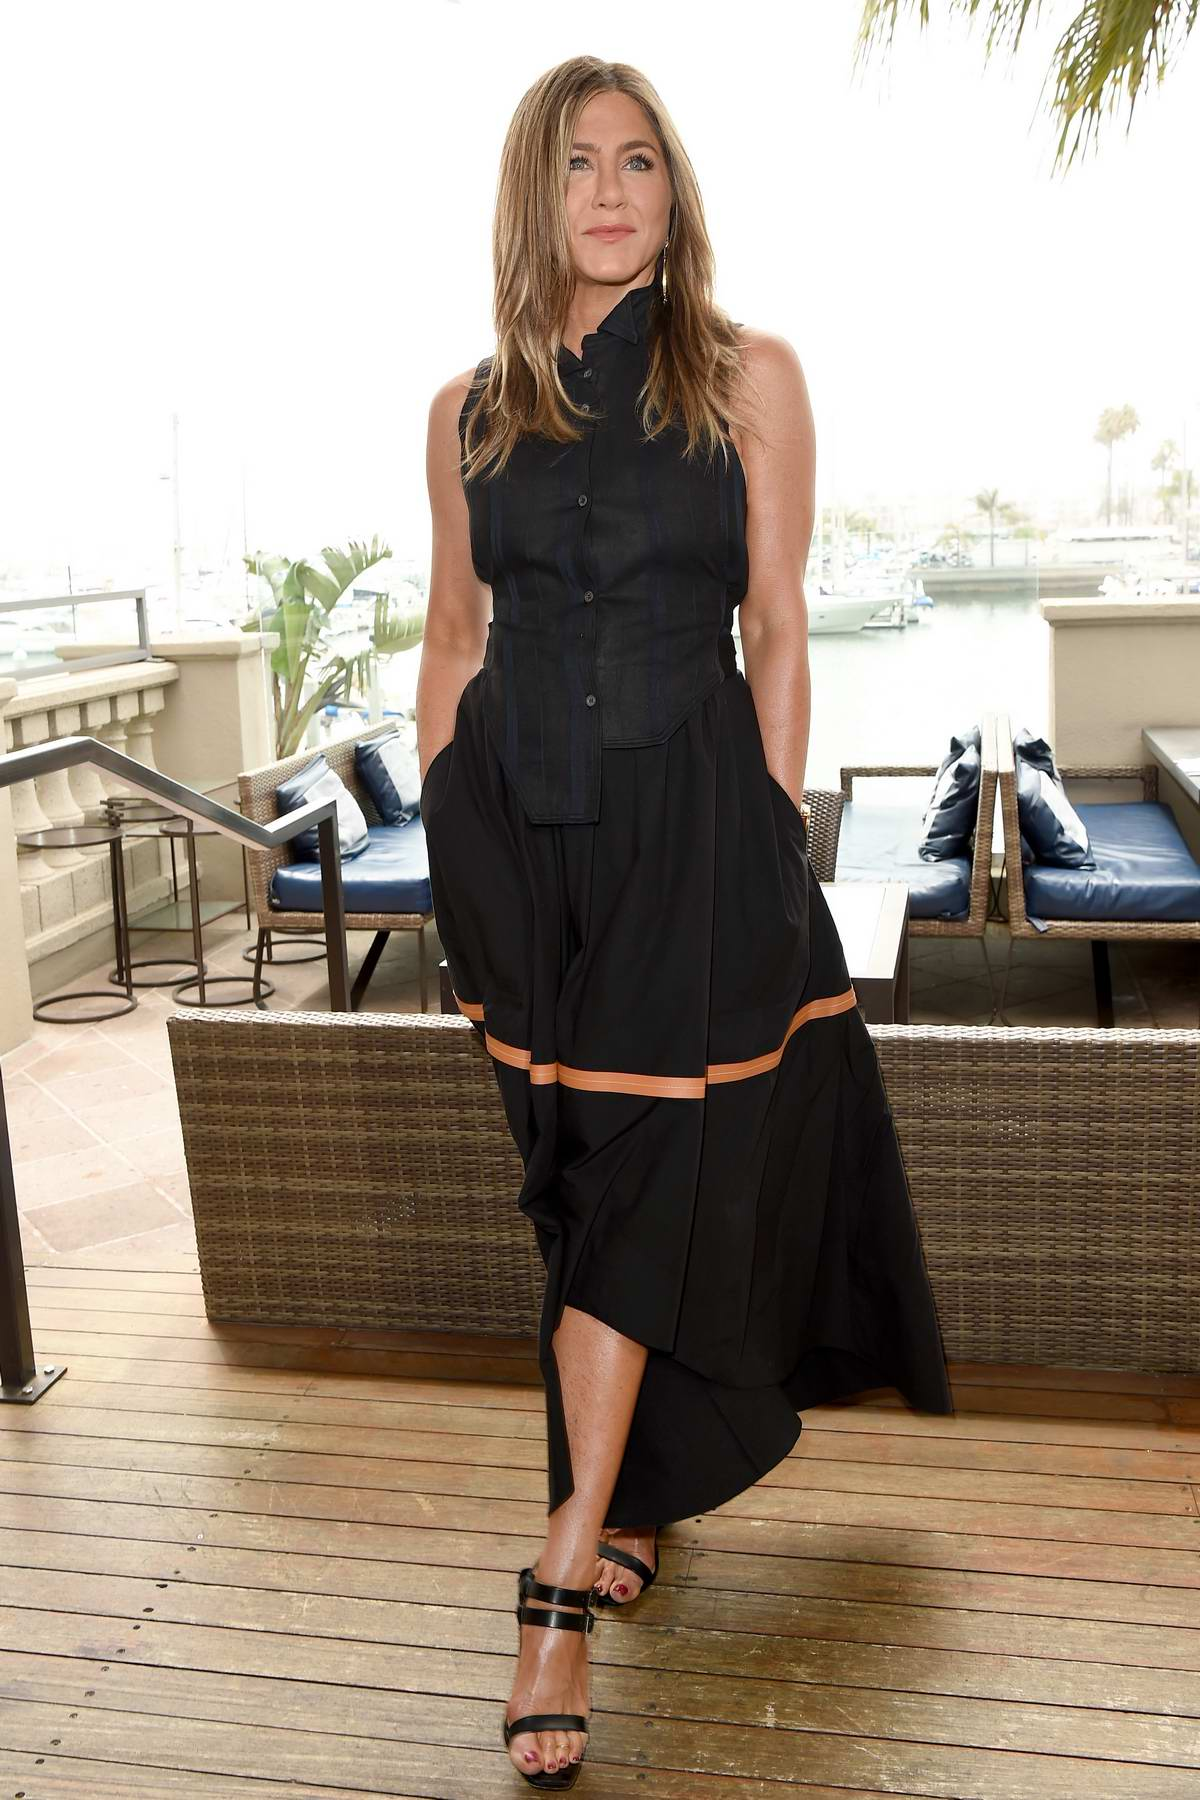 Jennifer Aniston attends a Photocall for Netflix's 'Murder Mystery' in Los Angeles